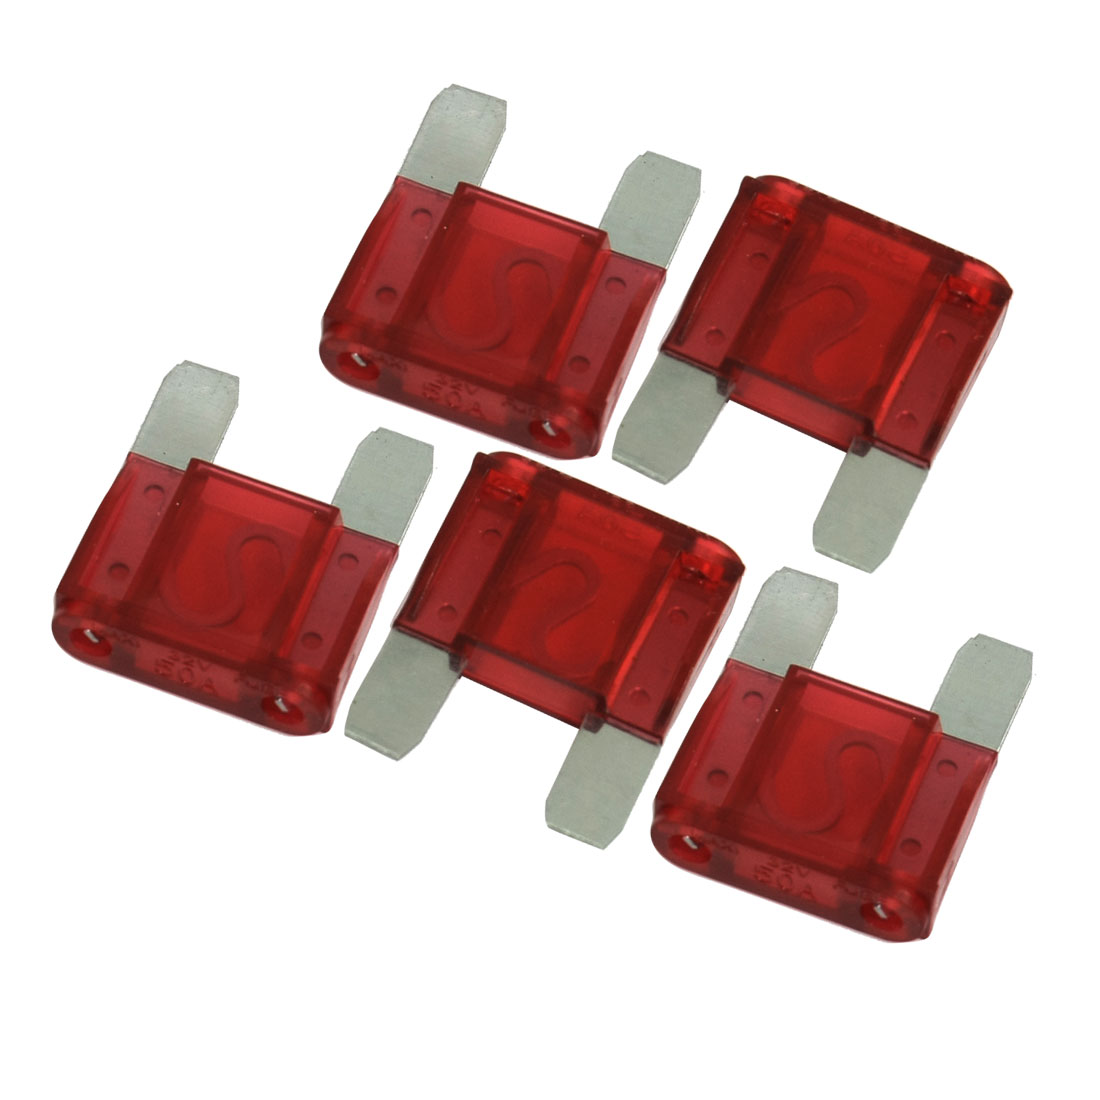 50A Car Truck Automotive Fast Acting Blade Fuse Red 5 Pcs